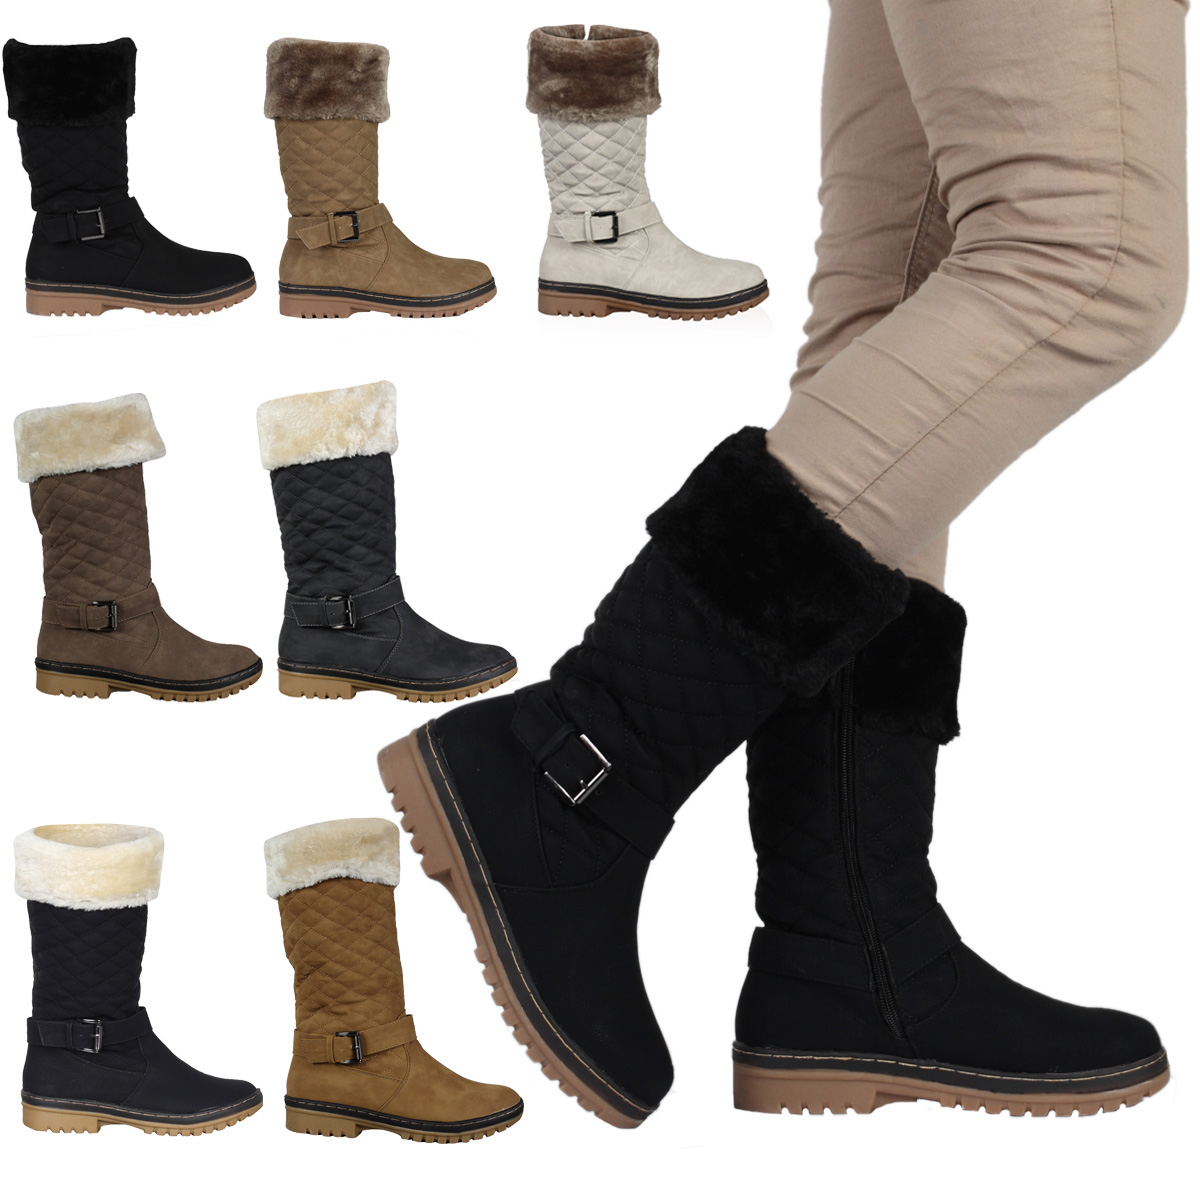 4H WOMENS QUILTED LADIES BUCKLE WINTER WARM GRIP SOLE ZIP BOOTS SHOES SIZE 3-8